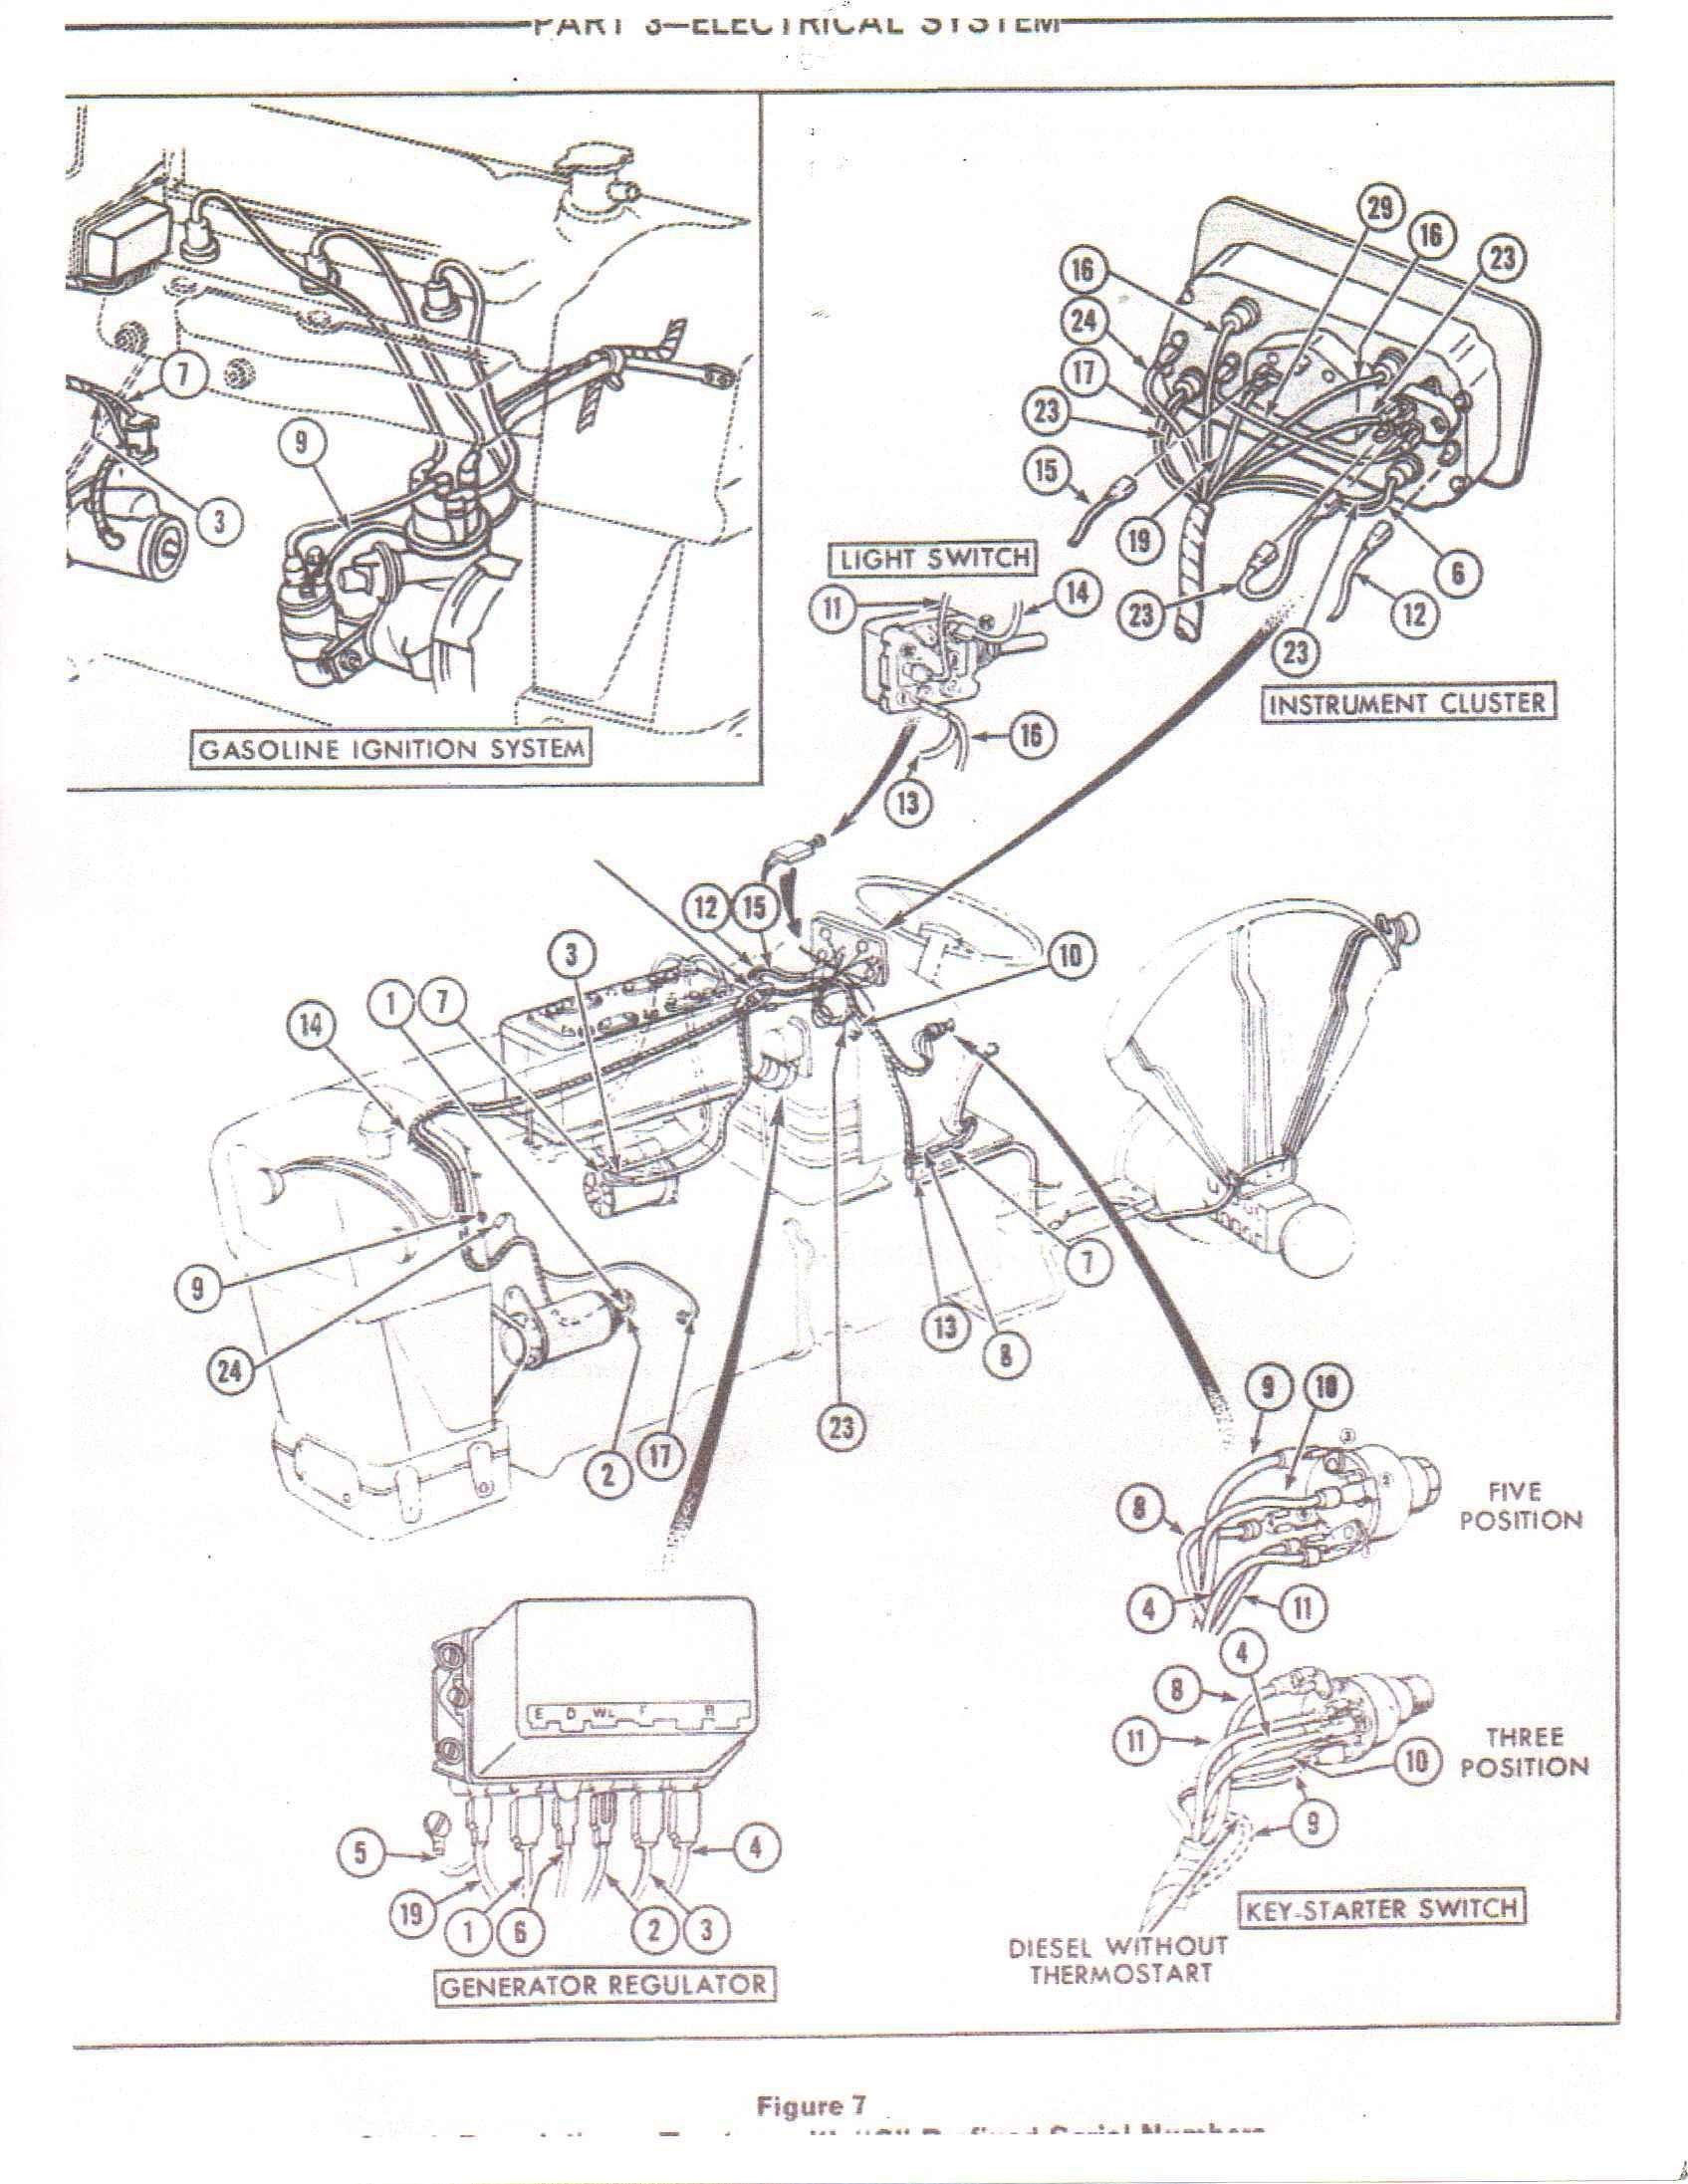 Ford tractor alternator wiring diagram elegant wiring diagram image